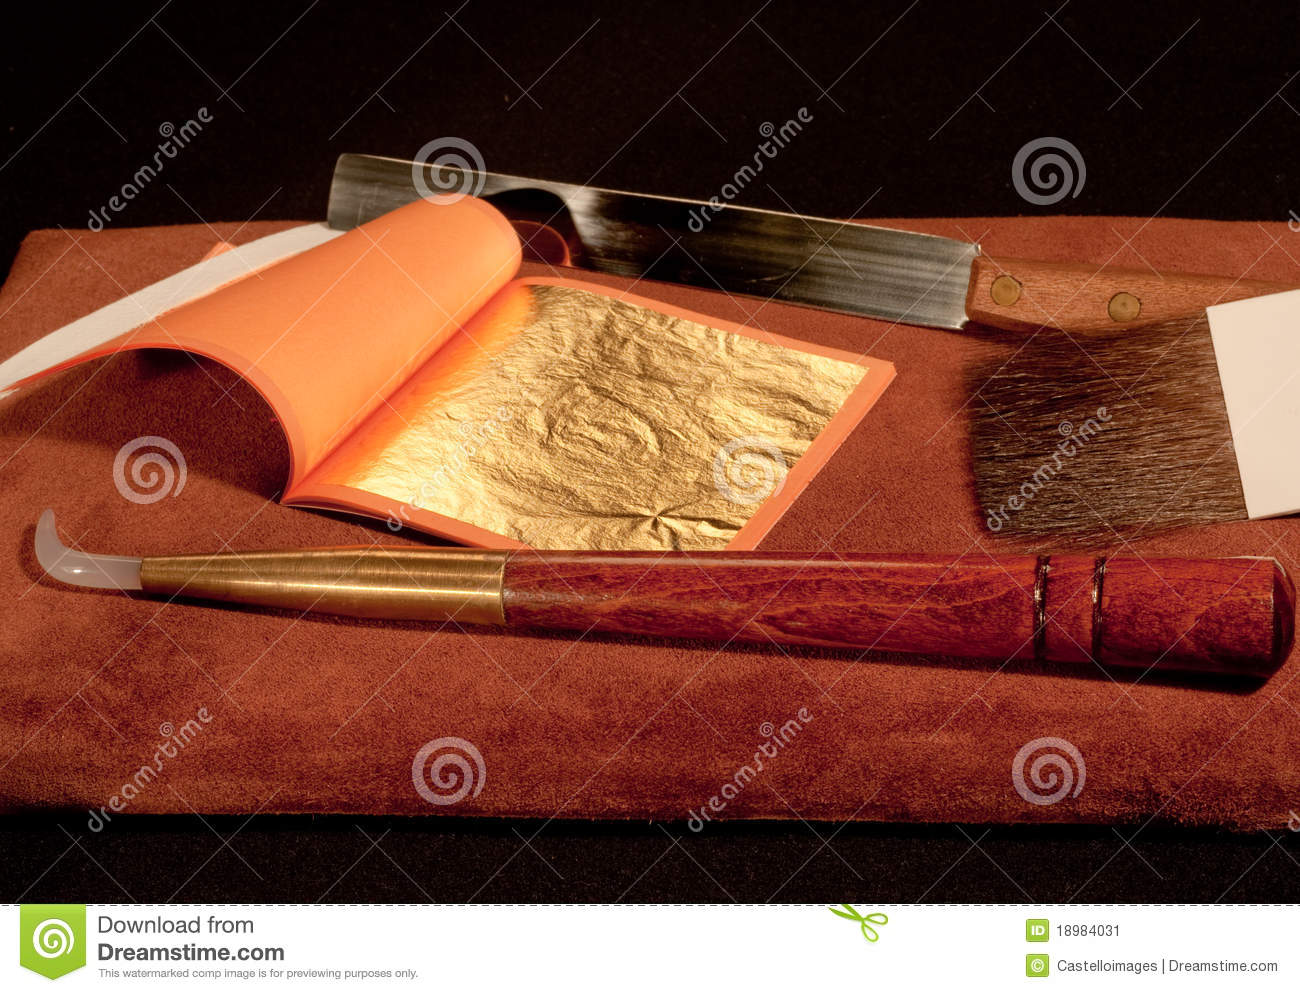 Gilding Tools And Gold Leaf Stock Image.